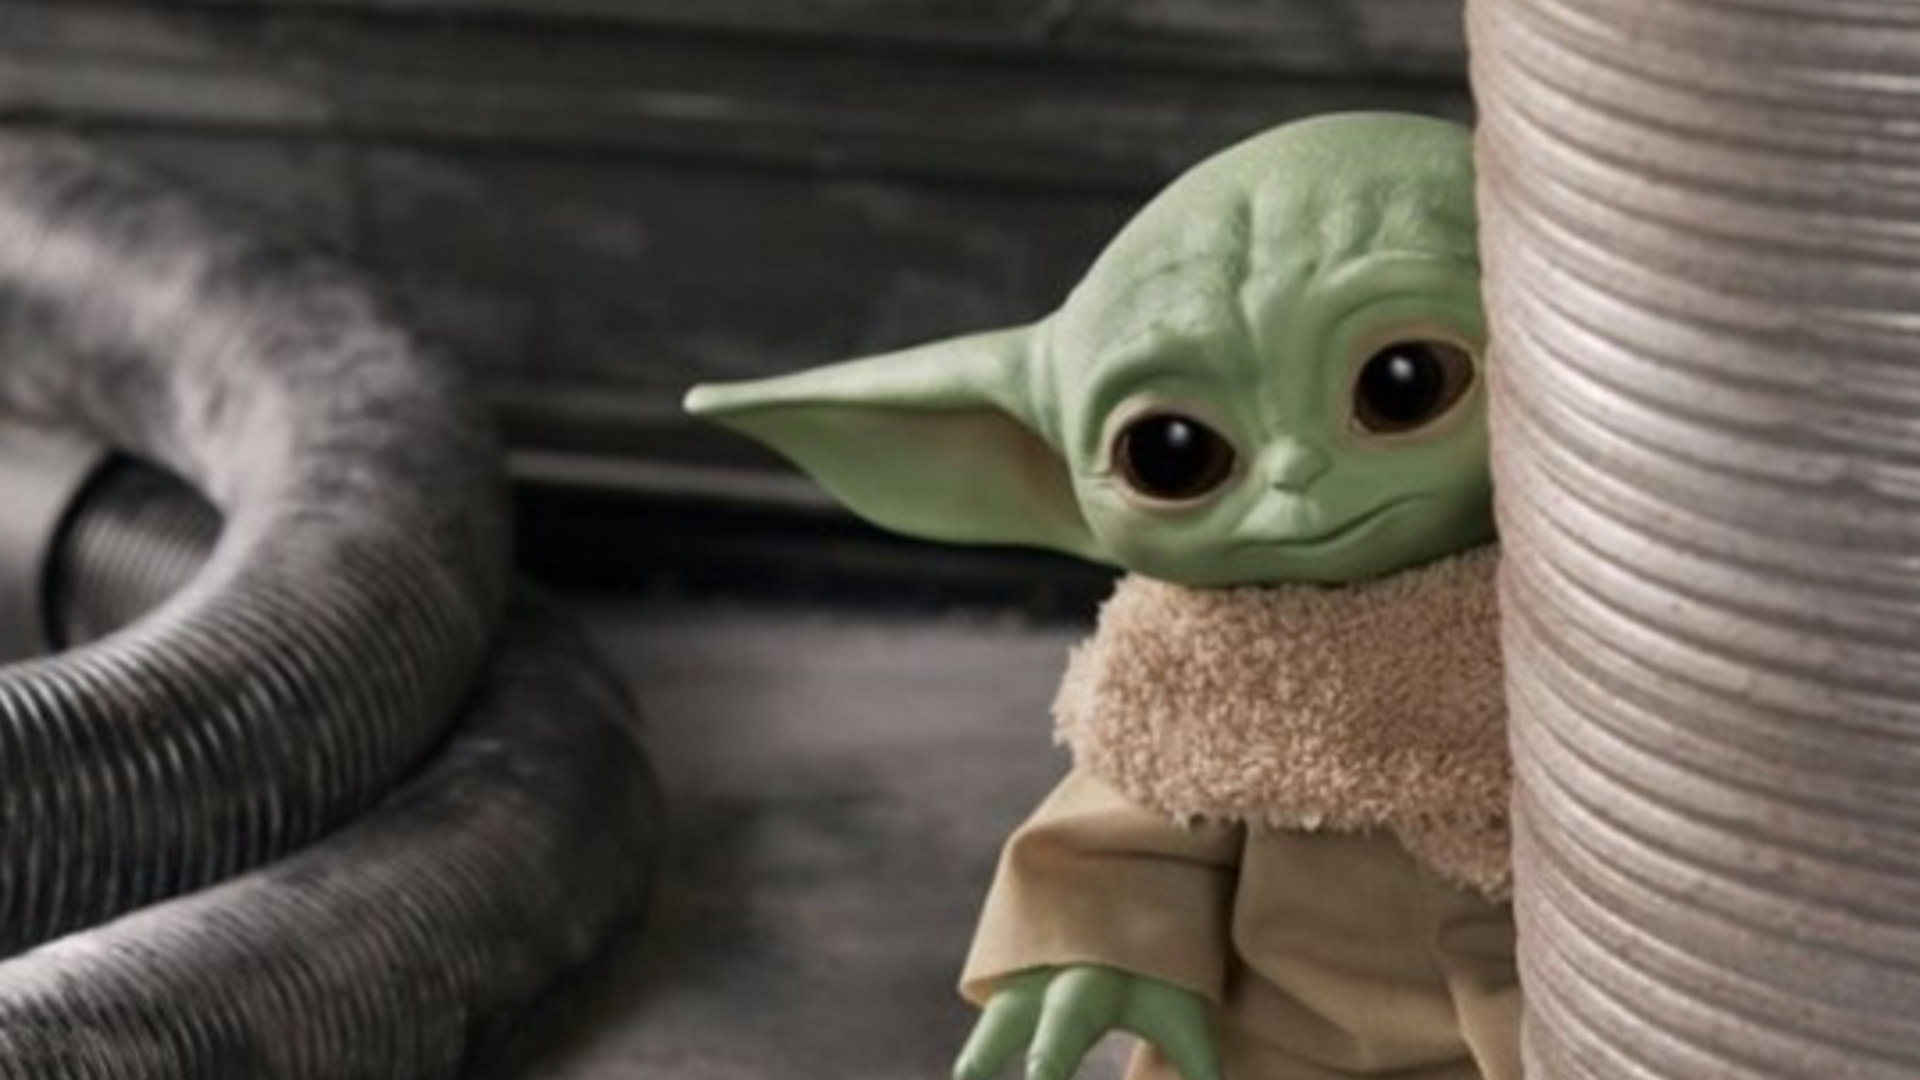 Get Your Own Baby Yoda For A Bargain Price With These Black Friday Merch Deals Gamesradar